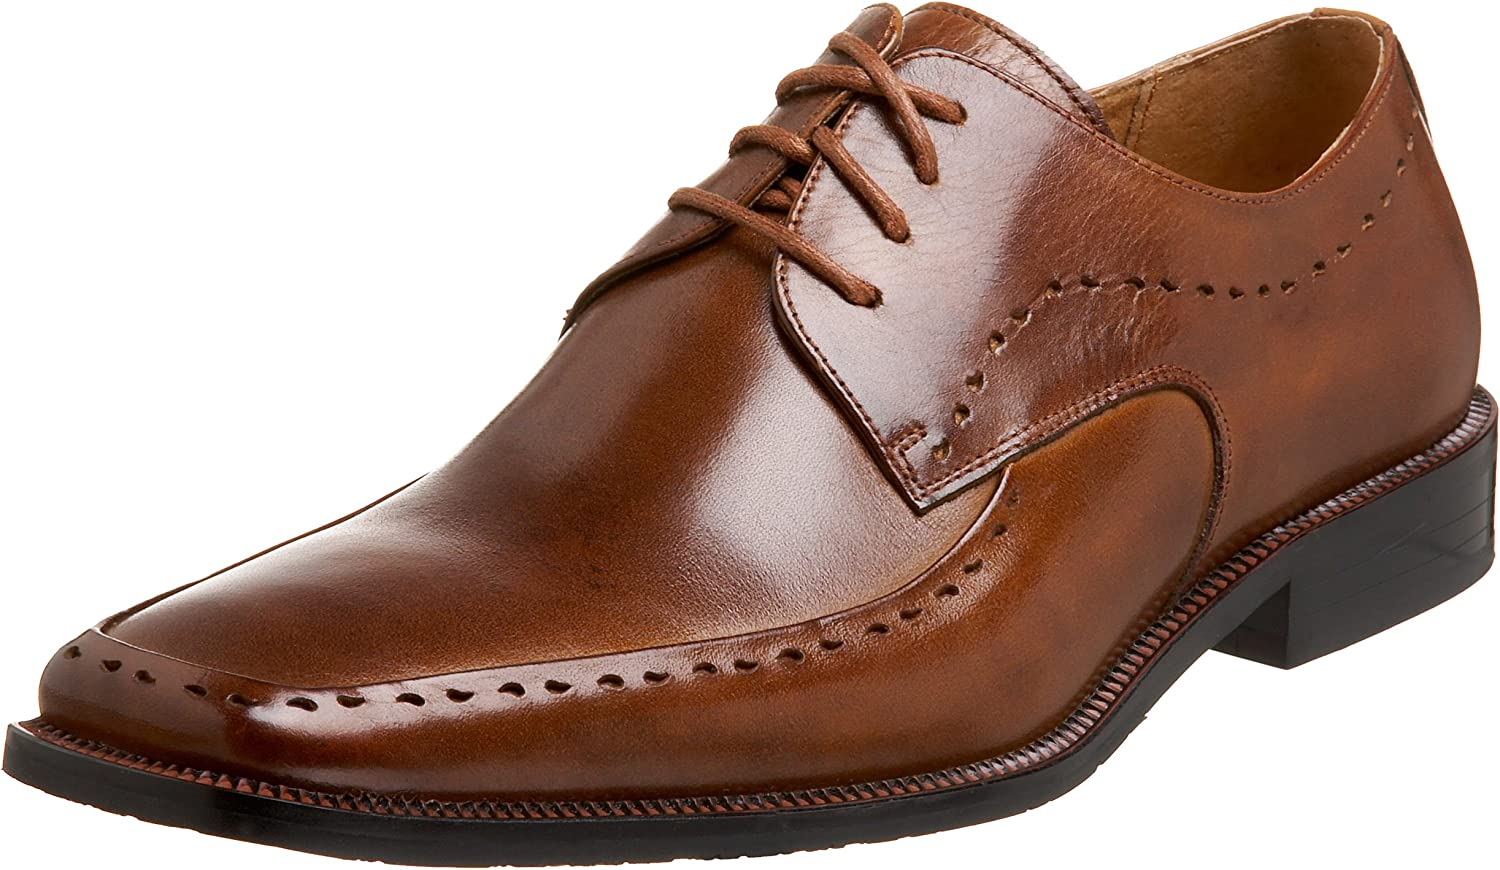 Stacy Adams Men's Donnelly Moc Toe Oxford